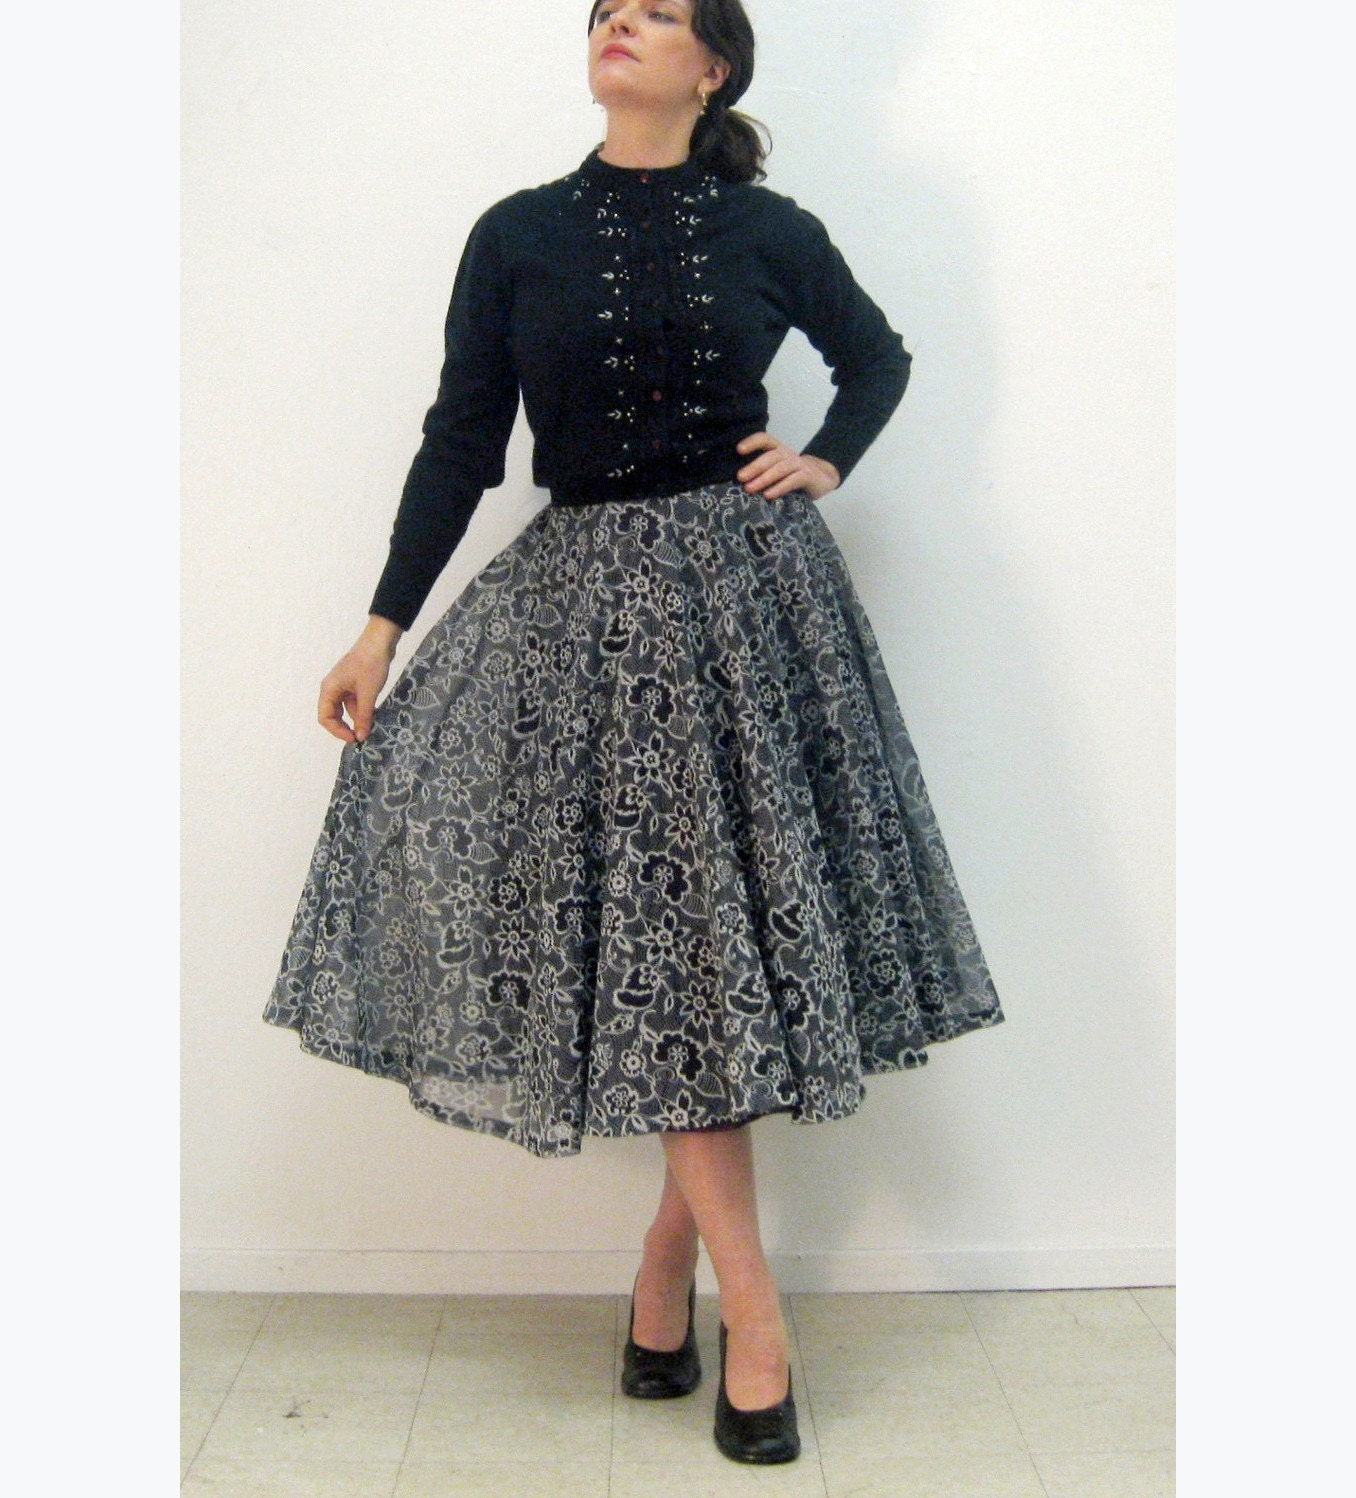 1950s circle skirt GORGEOUS navy and white FLORAL textured VOILE